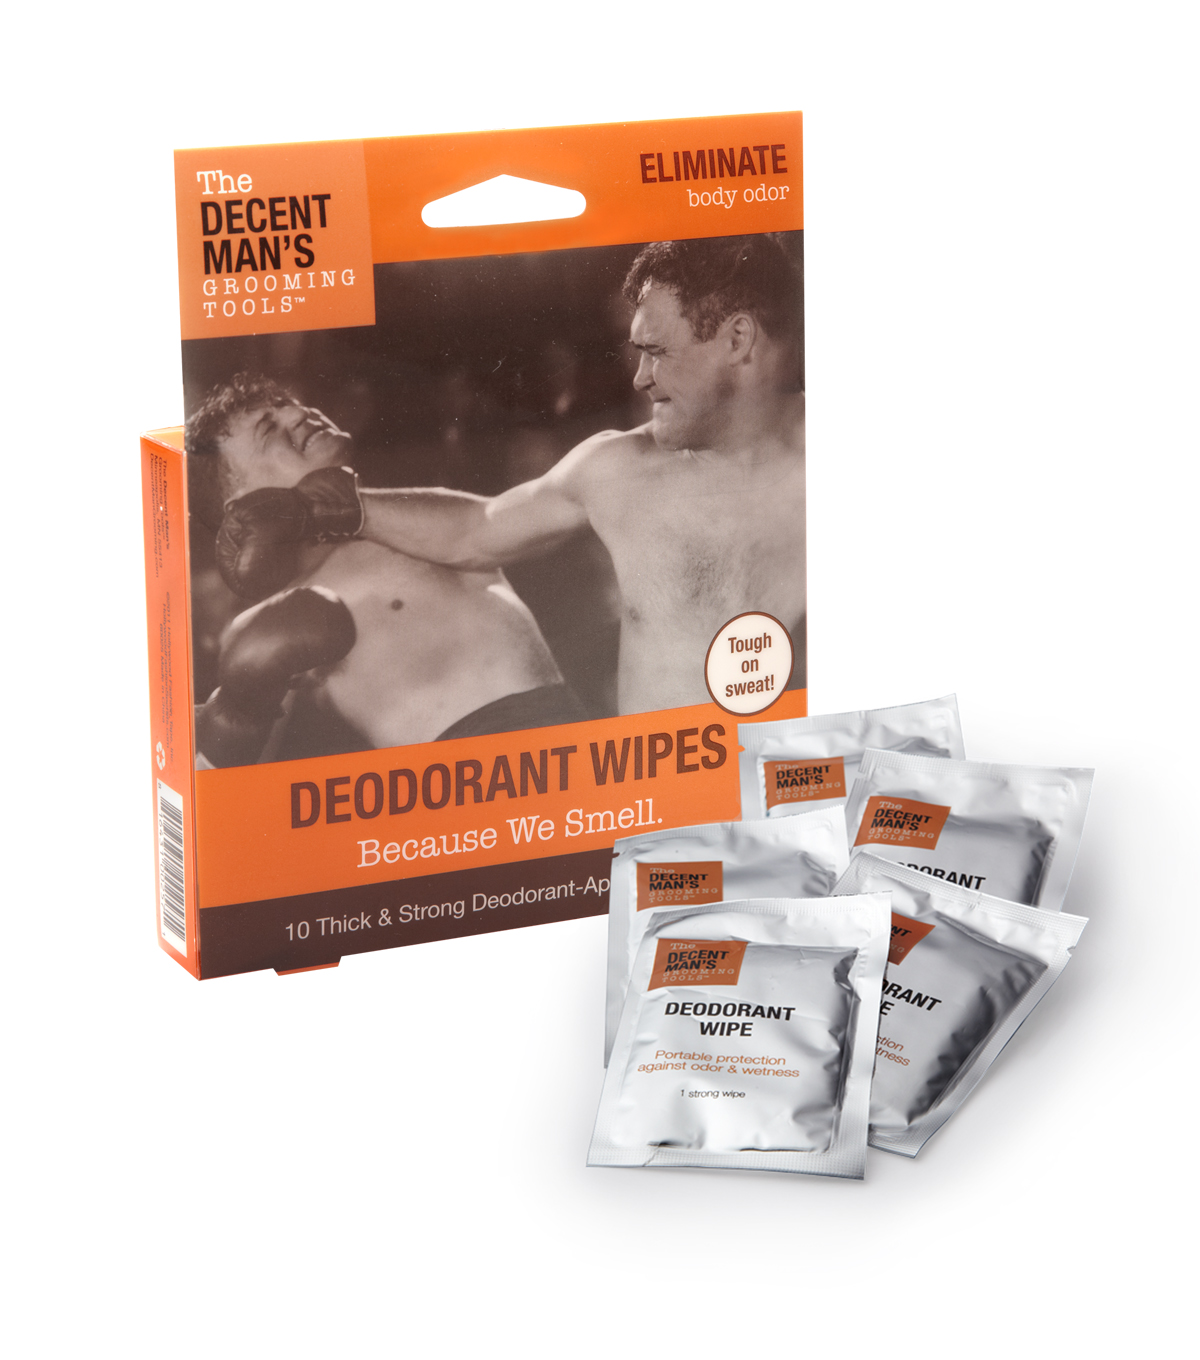 The Decent Man\u0027s Grooming Tools-Deodorant Wipes